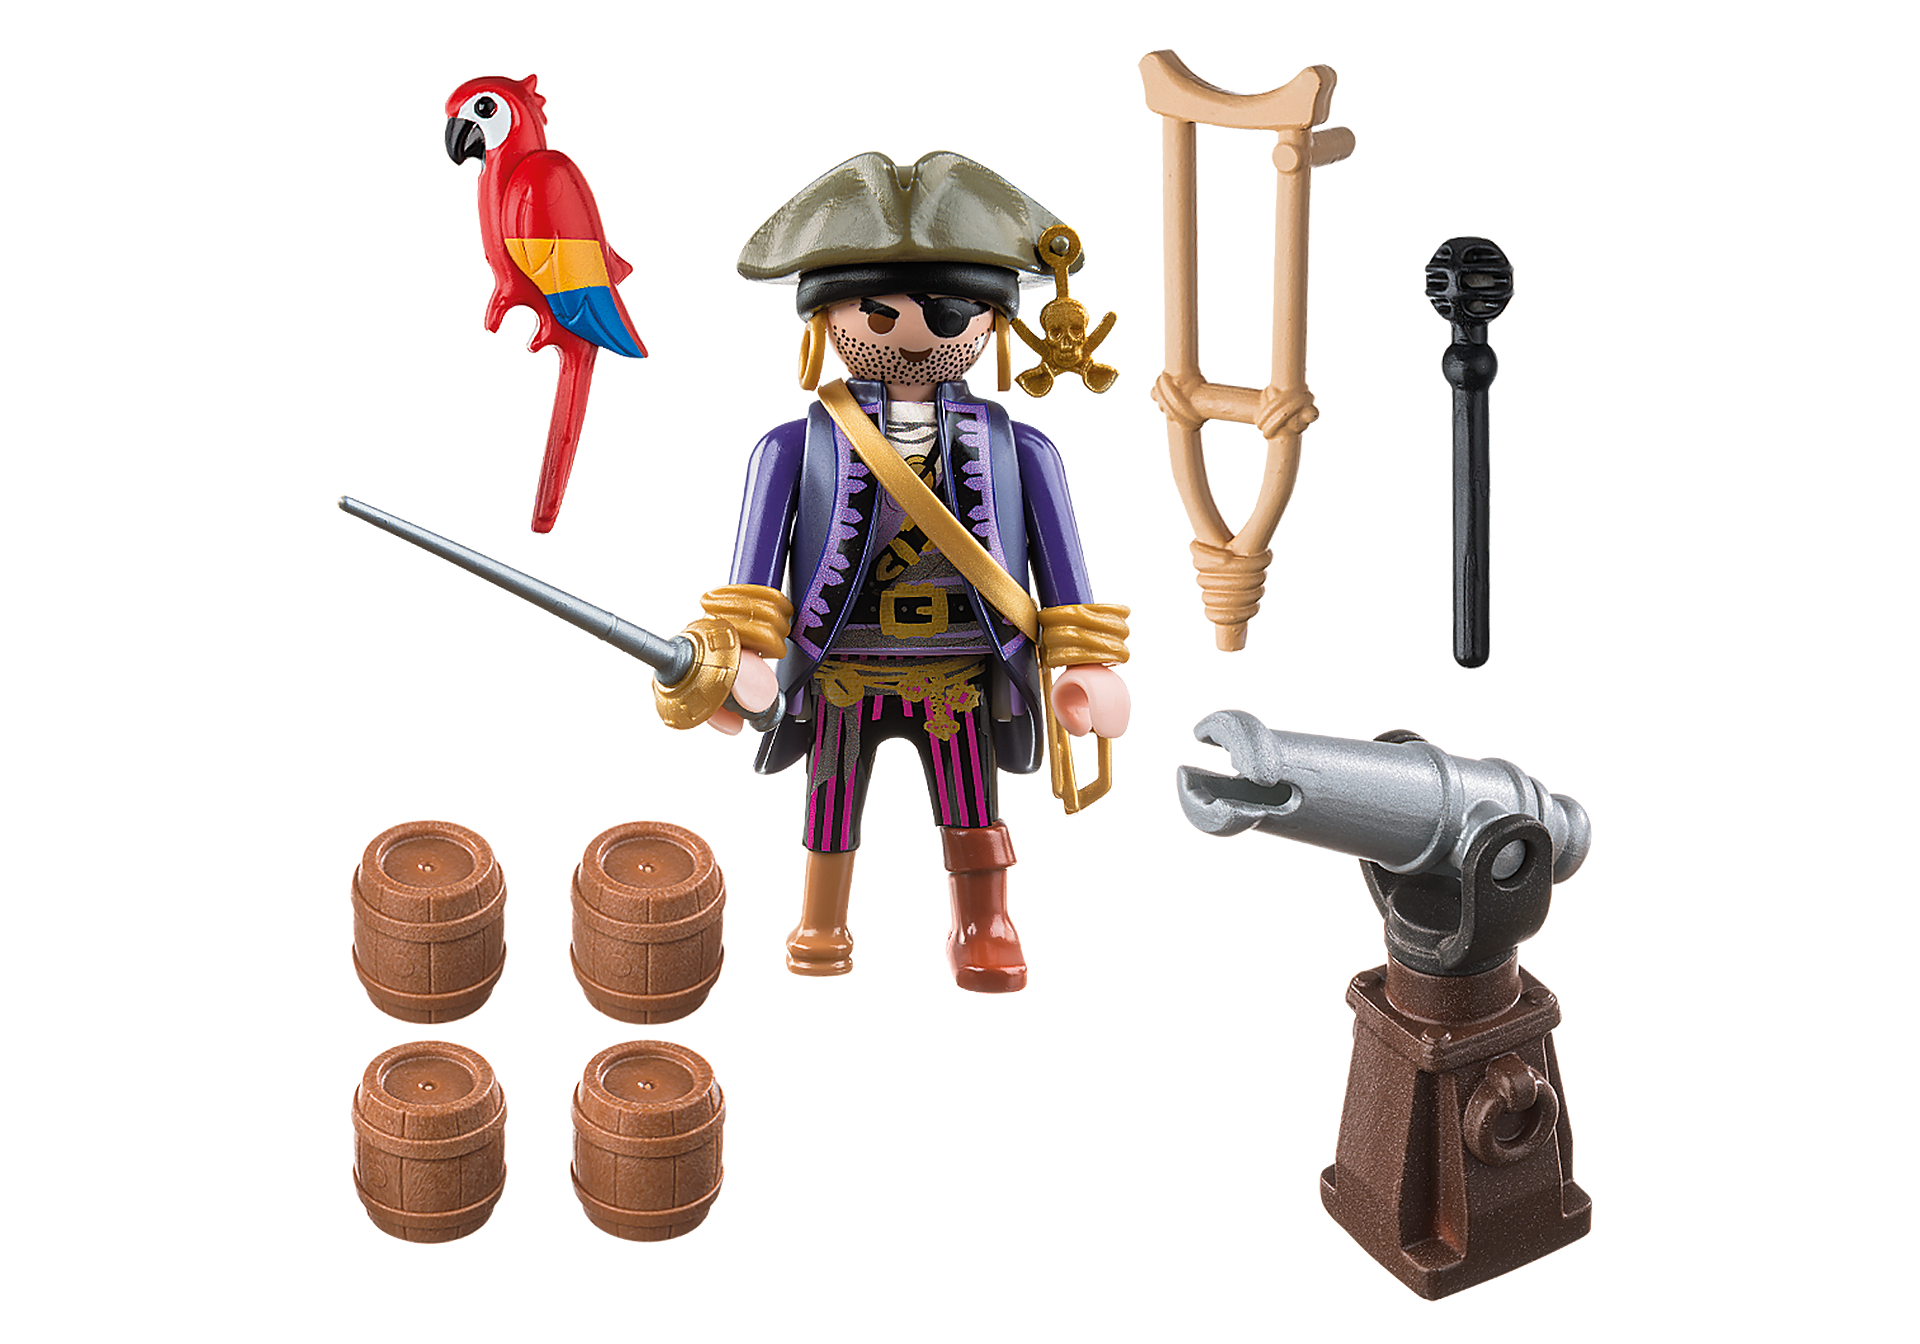 http://media.playmobil.com/i/playmobil/6684_product_box_back/Piratenkapitän